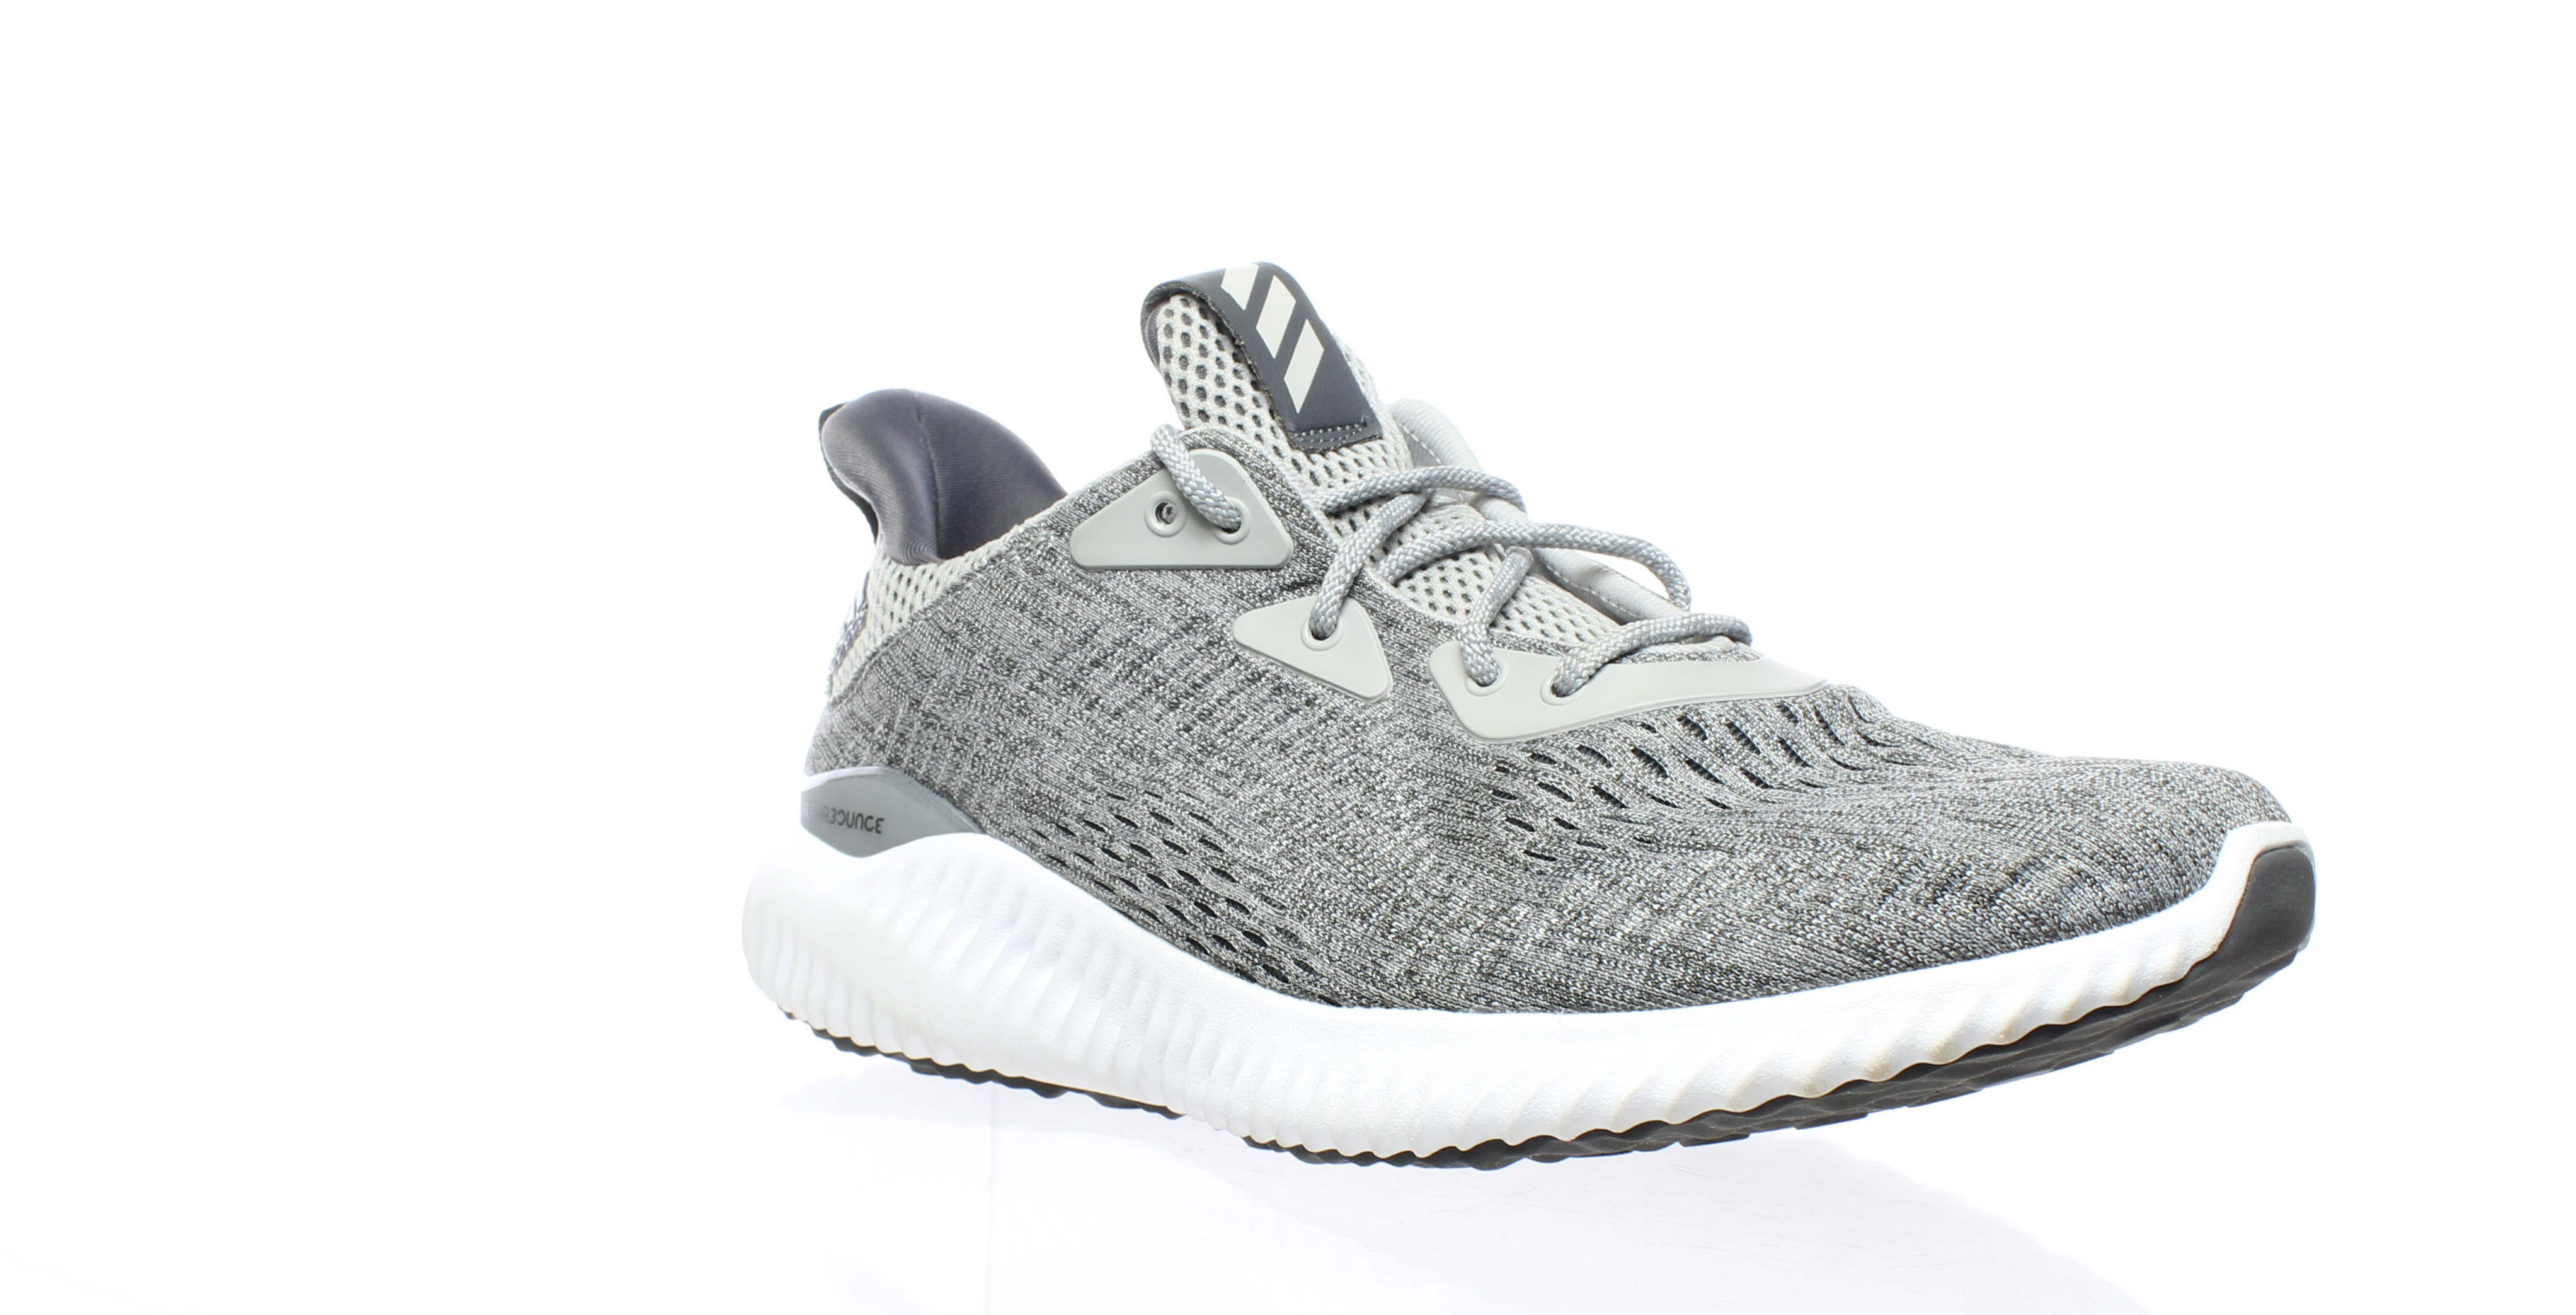 3d8d3defe Adidas Womens Alphabounce Em Gray Running Shoes Size 9.5 (212010)